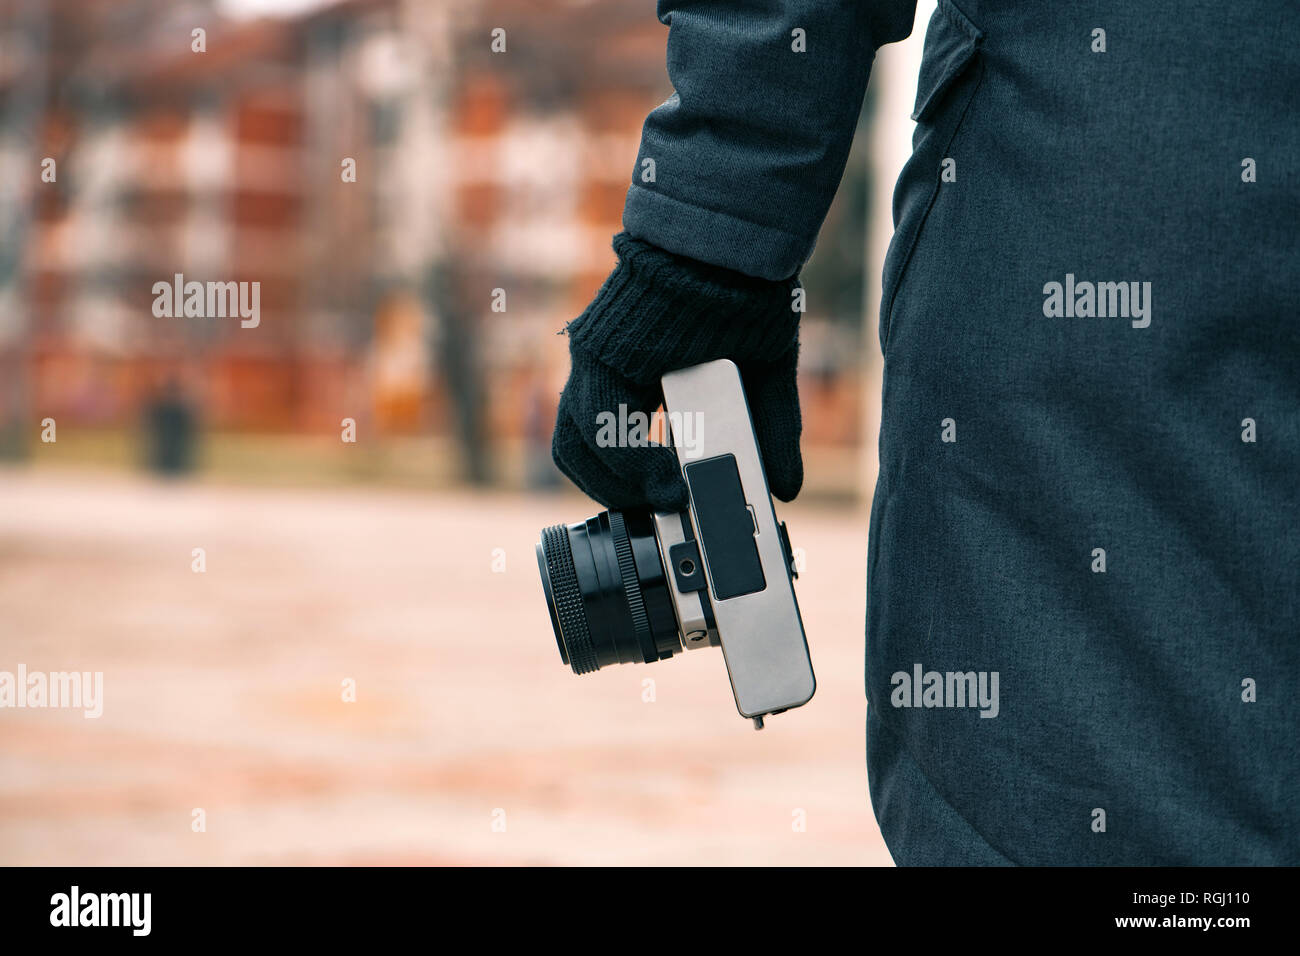 Hipster female photographer holding vintage SLR camera on street in winter, close up of hand - Stock Image